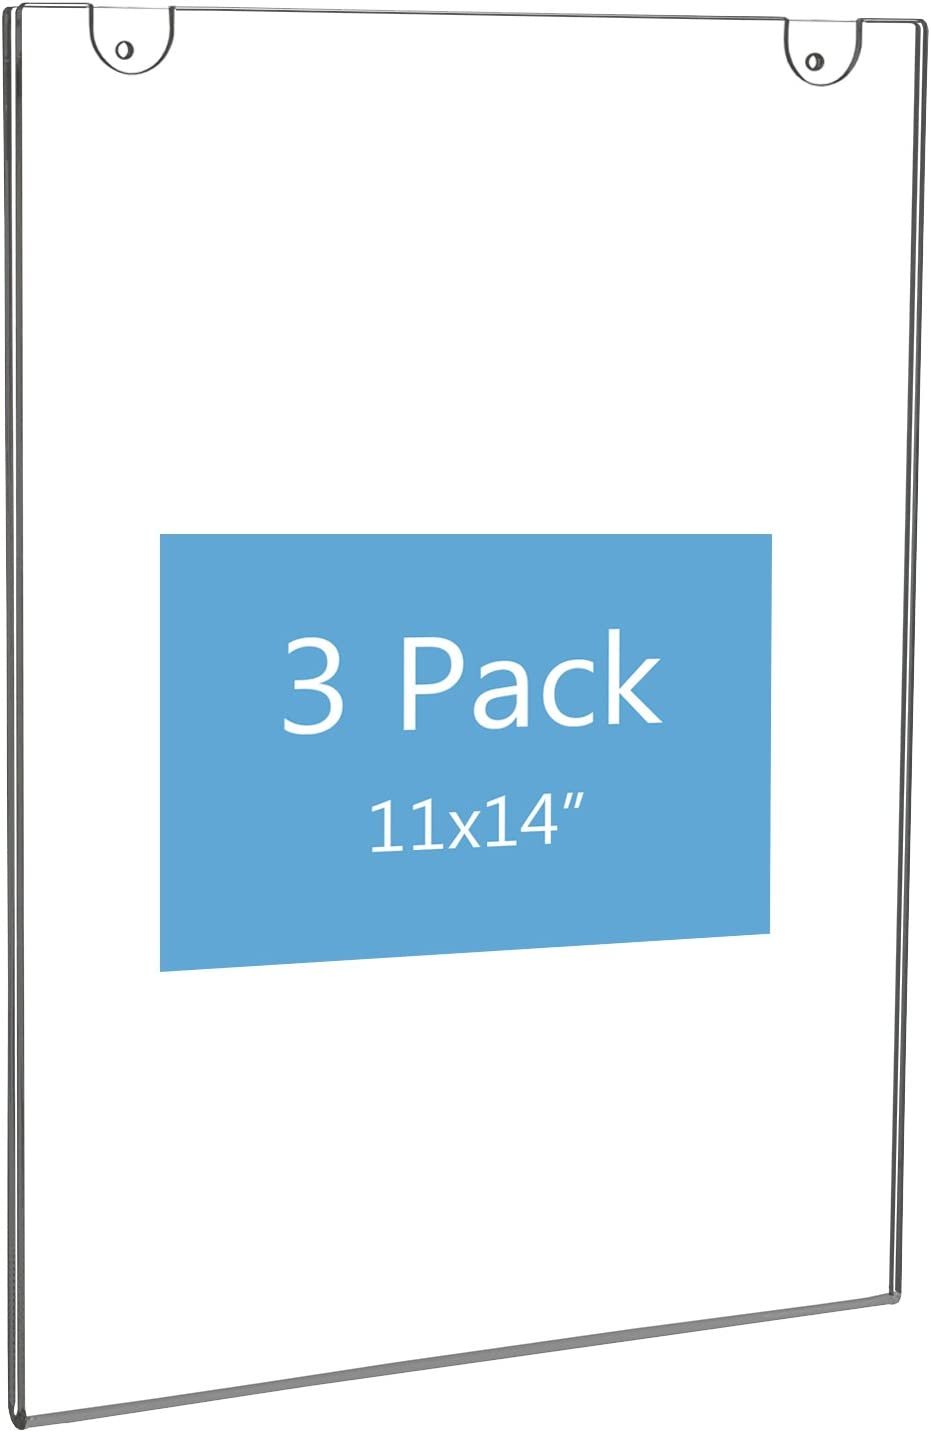 NIUBEE Acrylic Wall Sign Holder 11x14 Vertical, Clear Plastic Ads Frame for Paper, Bonus with 3M Tape and Mounting Screws(3 Pack)